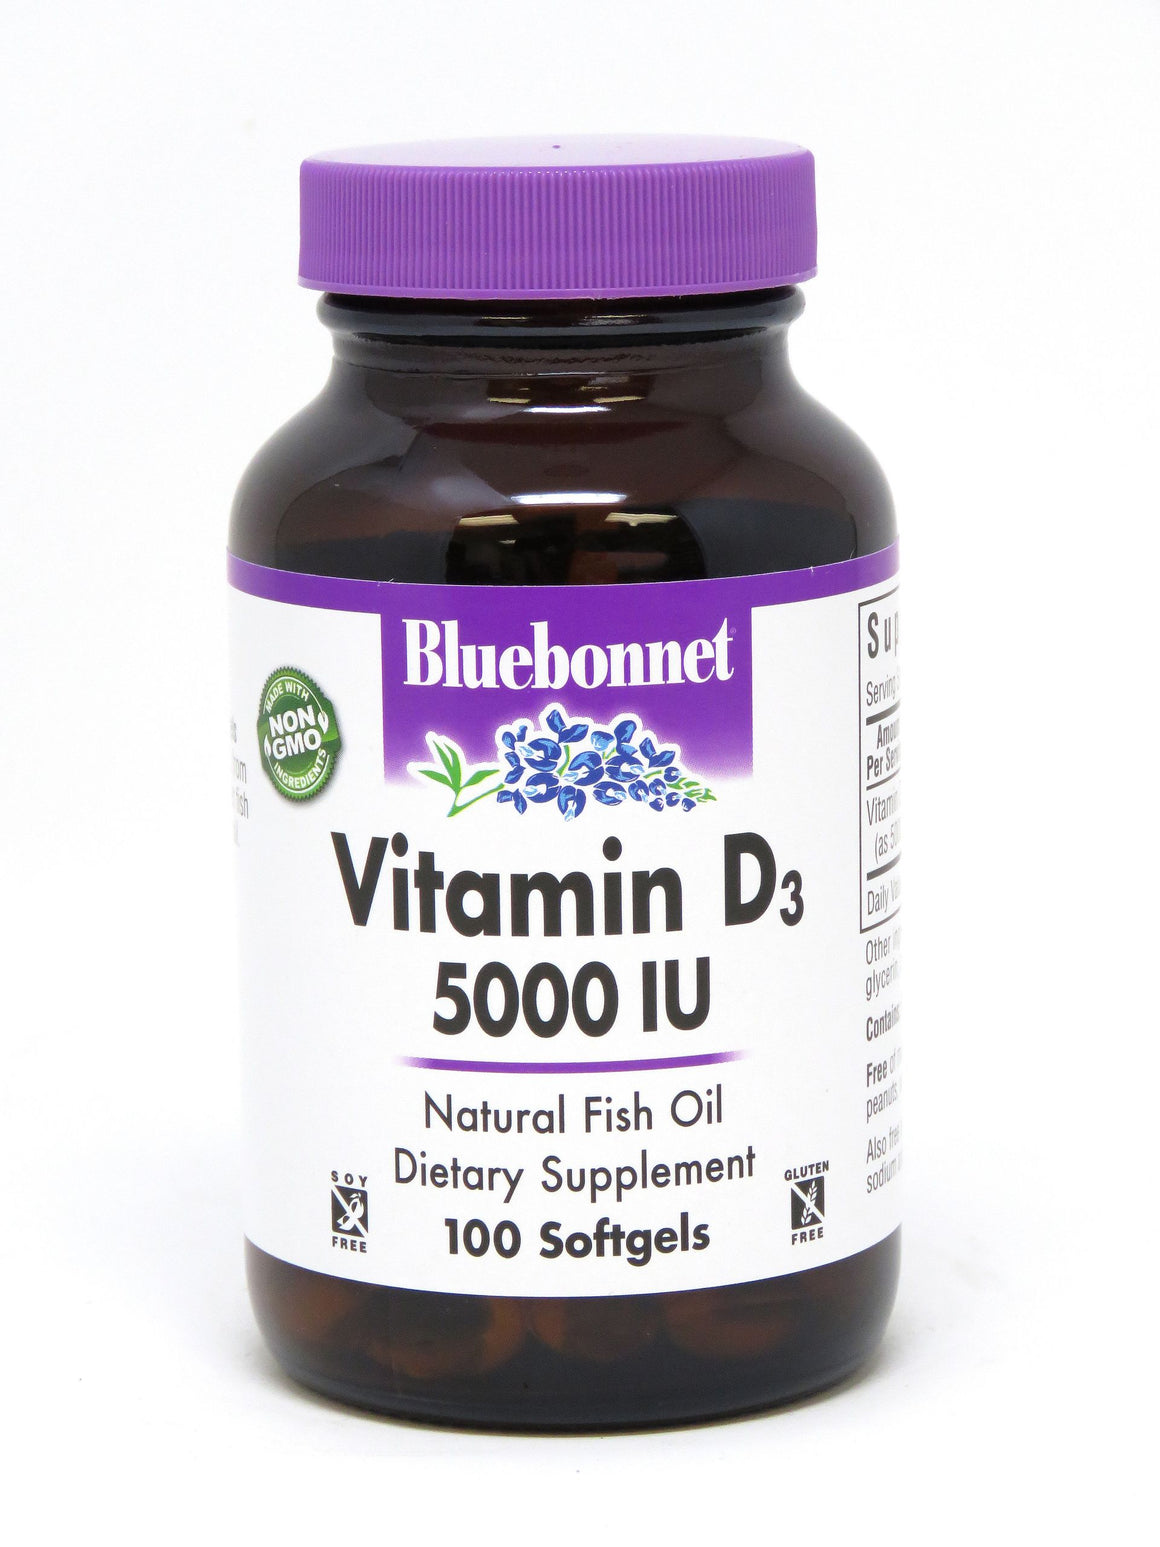 A bottle of Bluebonnet Vitamin D3 5000 IU